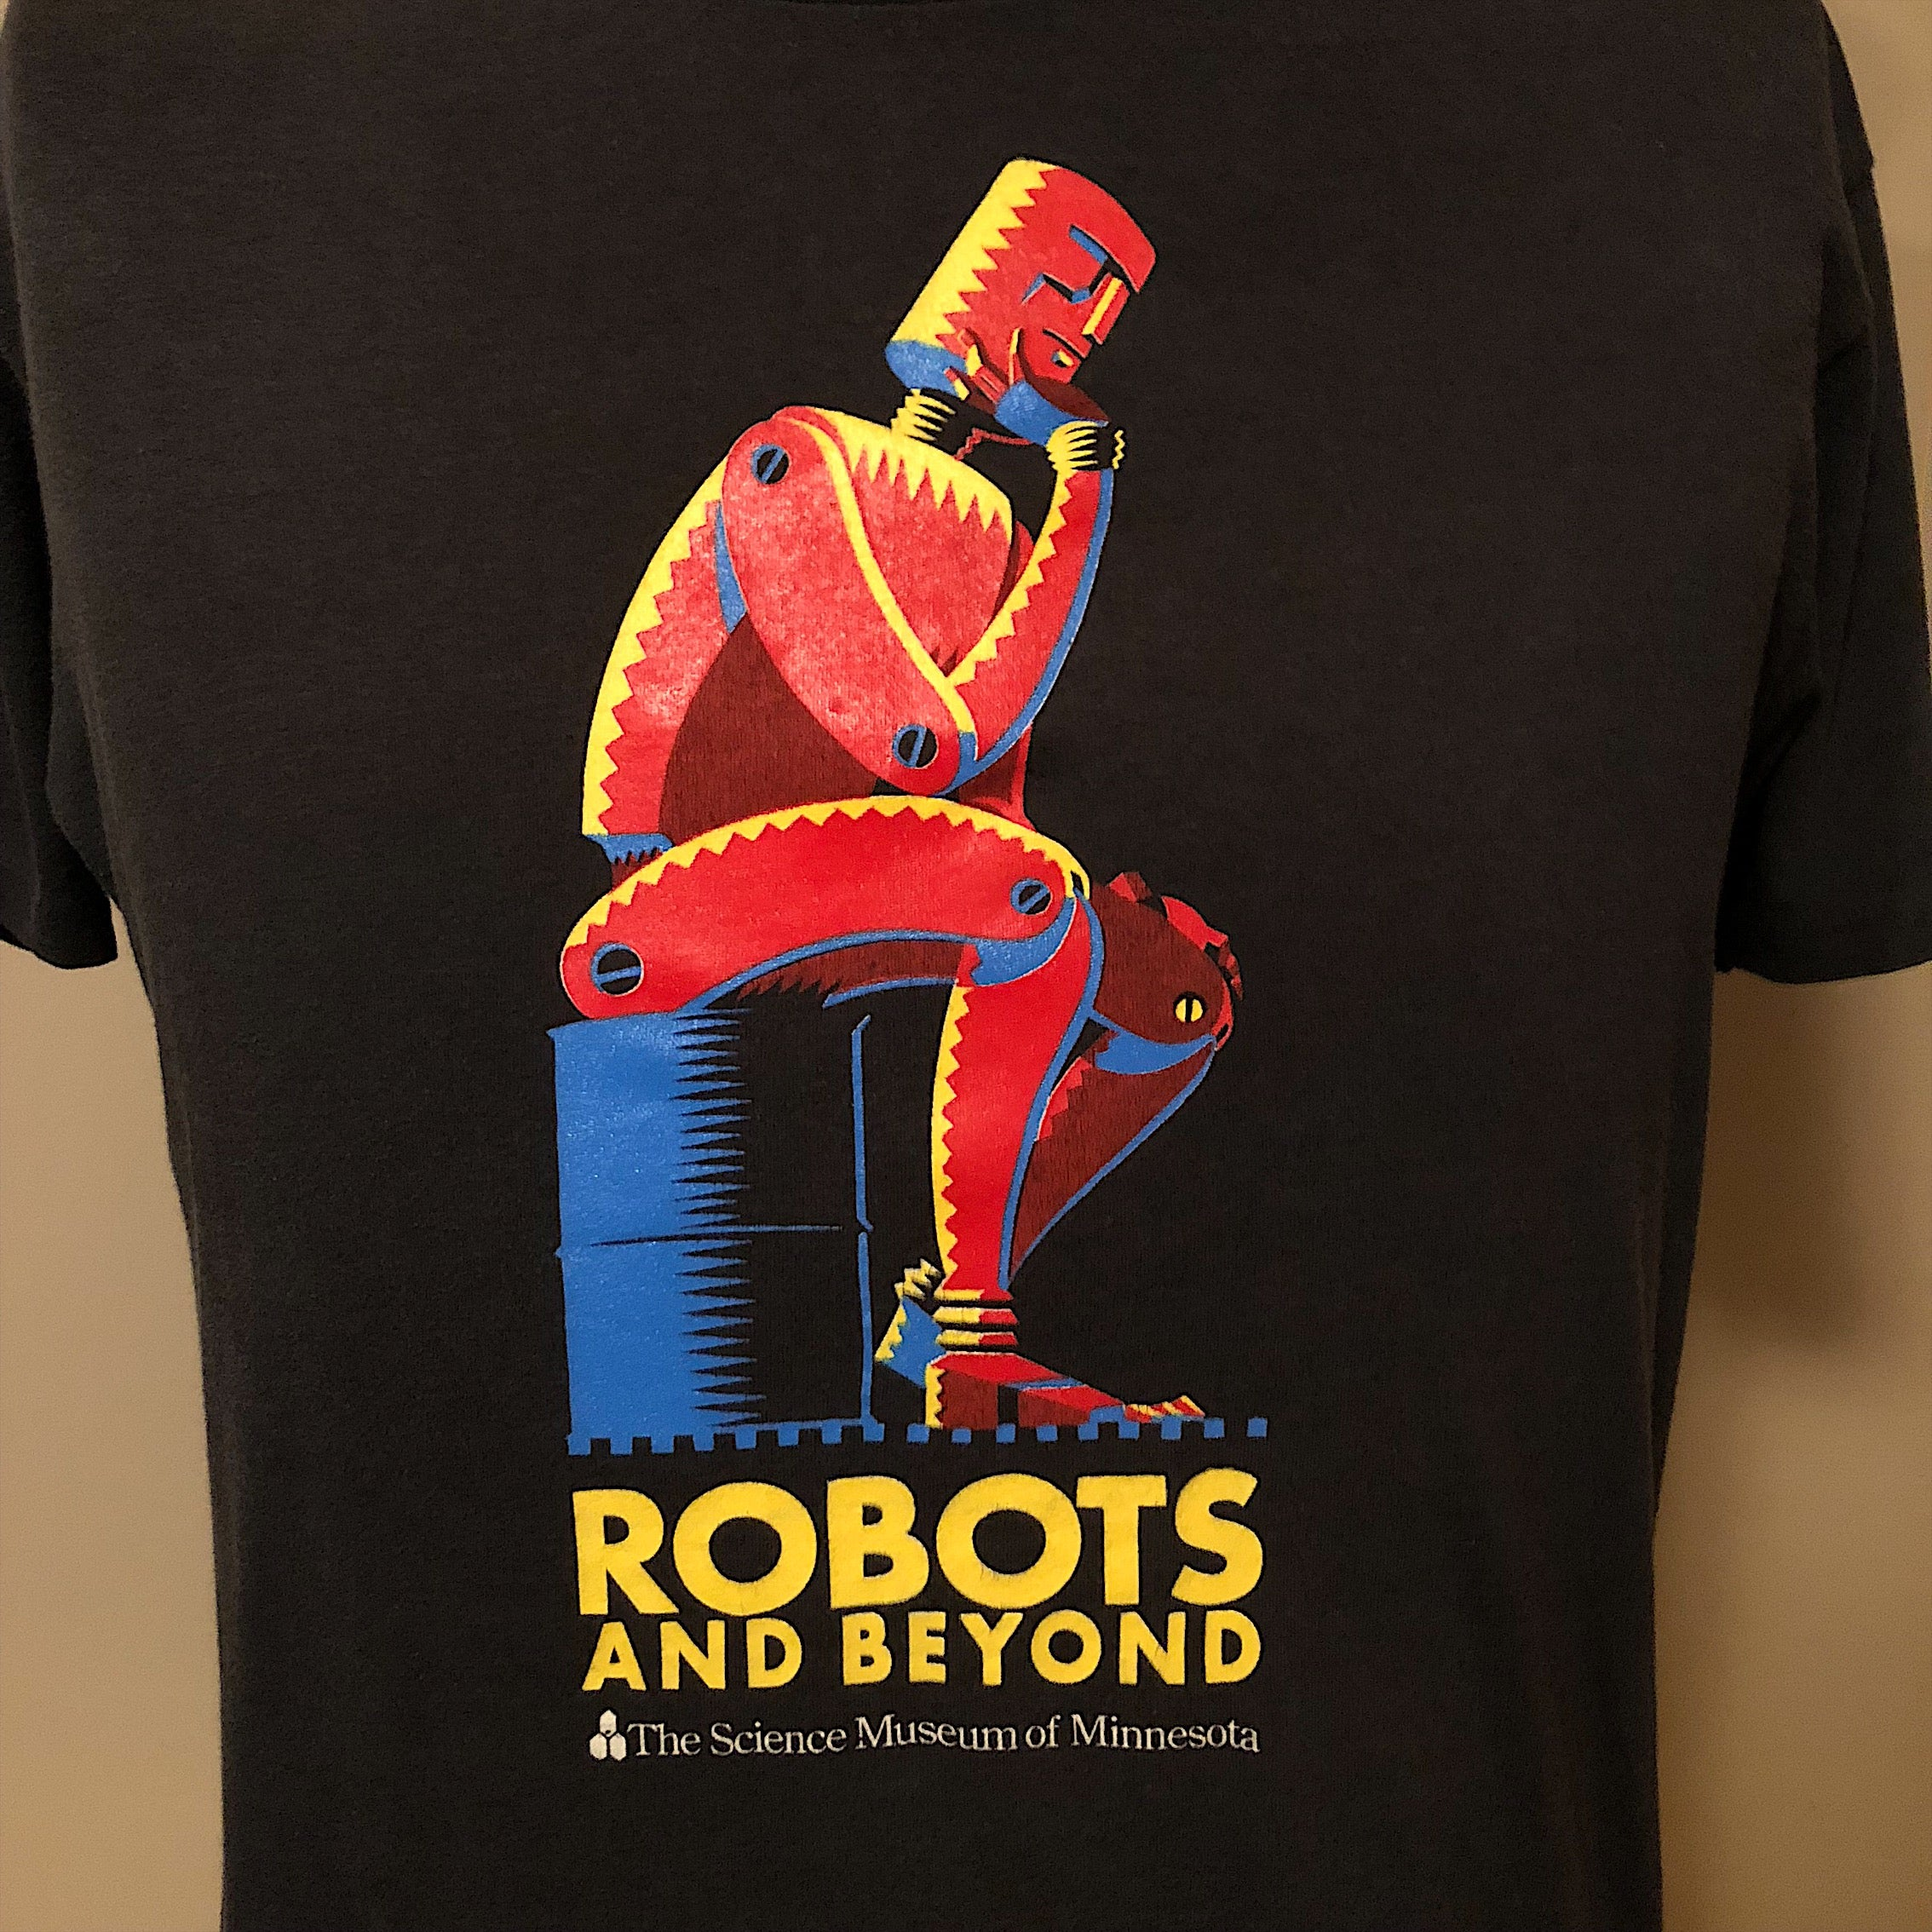 "Robot T-Shirt from Science Museum Exhibition - Black XL - ""Robots and Beyond"" - 1988- Vintage Sci-Fi Graphic - Steampunk - A.I."